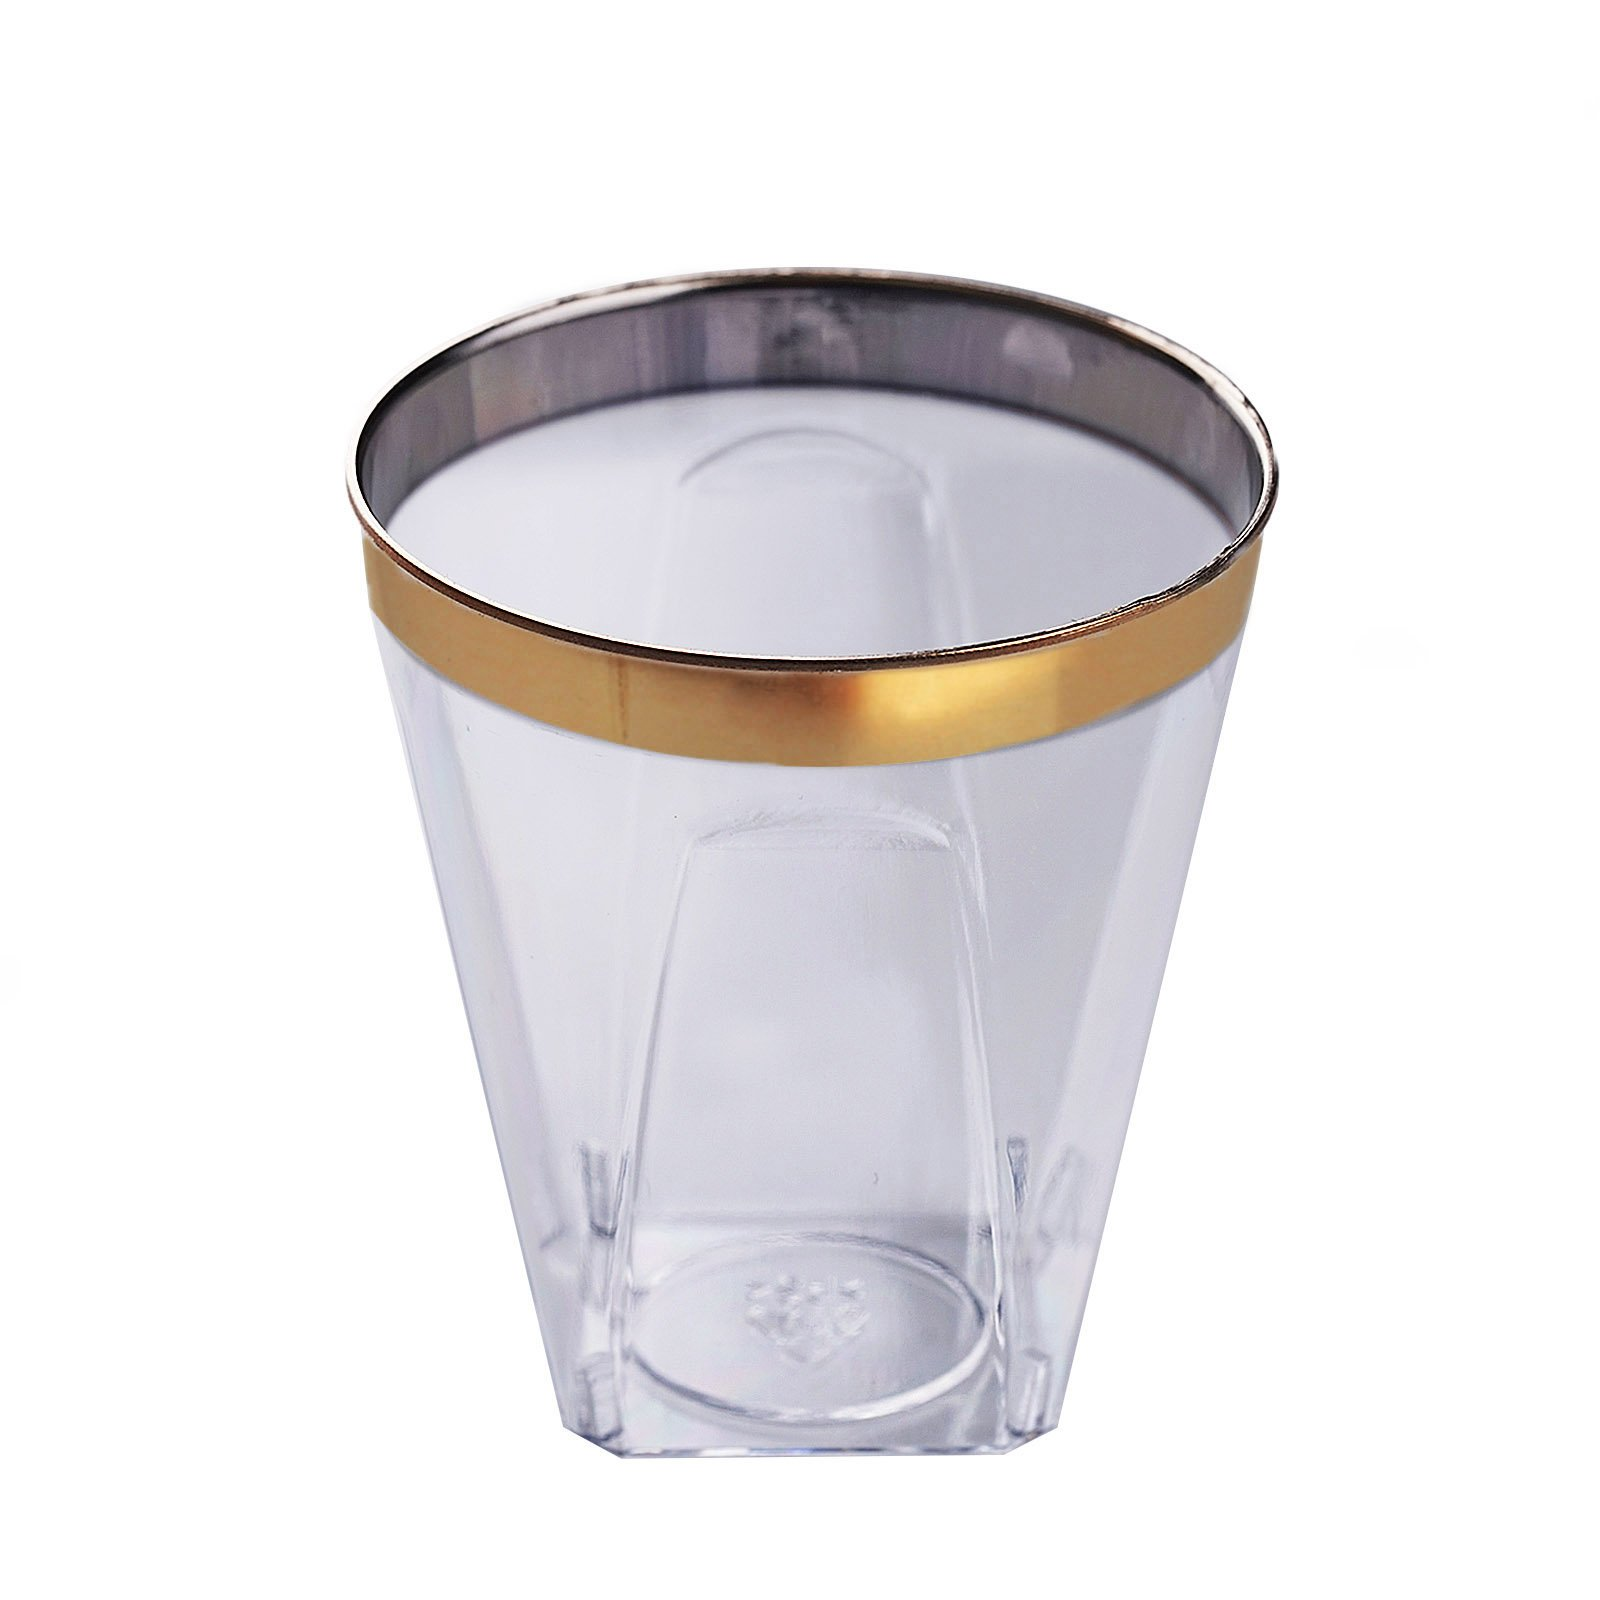 BalsaCircle 72 pcs 2 oz Clear with Gold Trim Plastic Shot Glasses - Disposable Wedding Party Catering Tableware by BalsaCircle